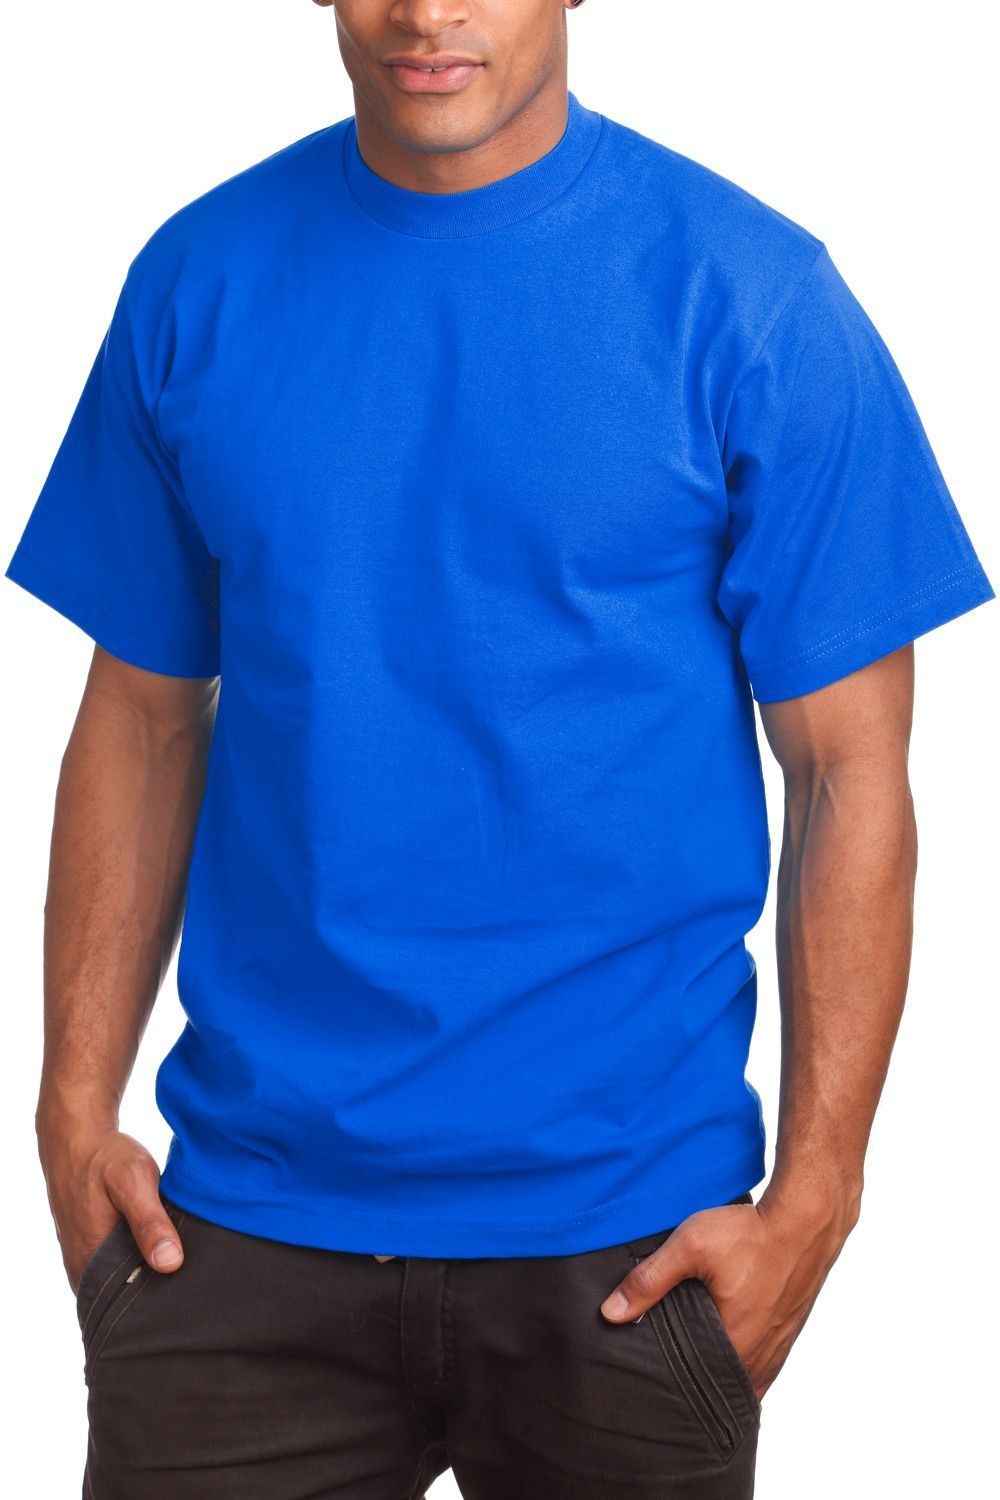 eecb45a8 Super Heavy T-shirt: Tall Sizes Mens Tee Athletic Activewear Tight Neck – Pro  5 Apparel